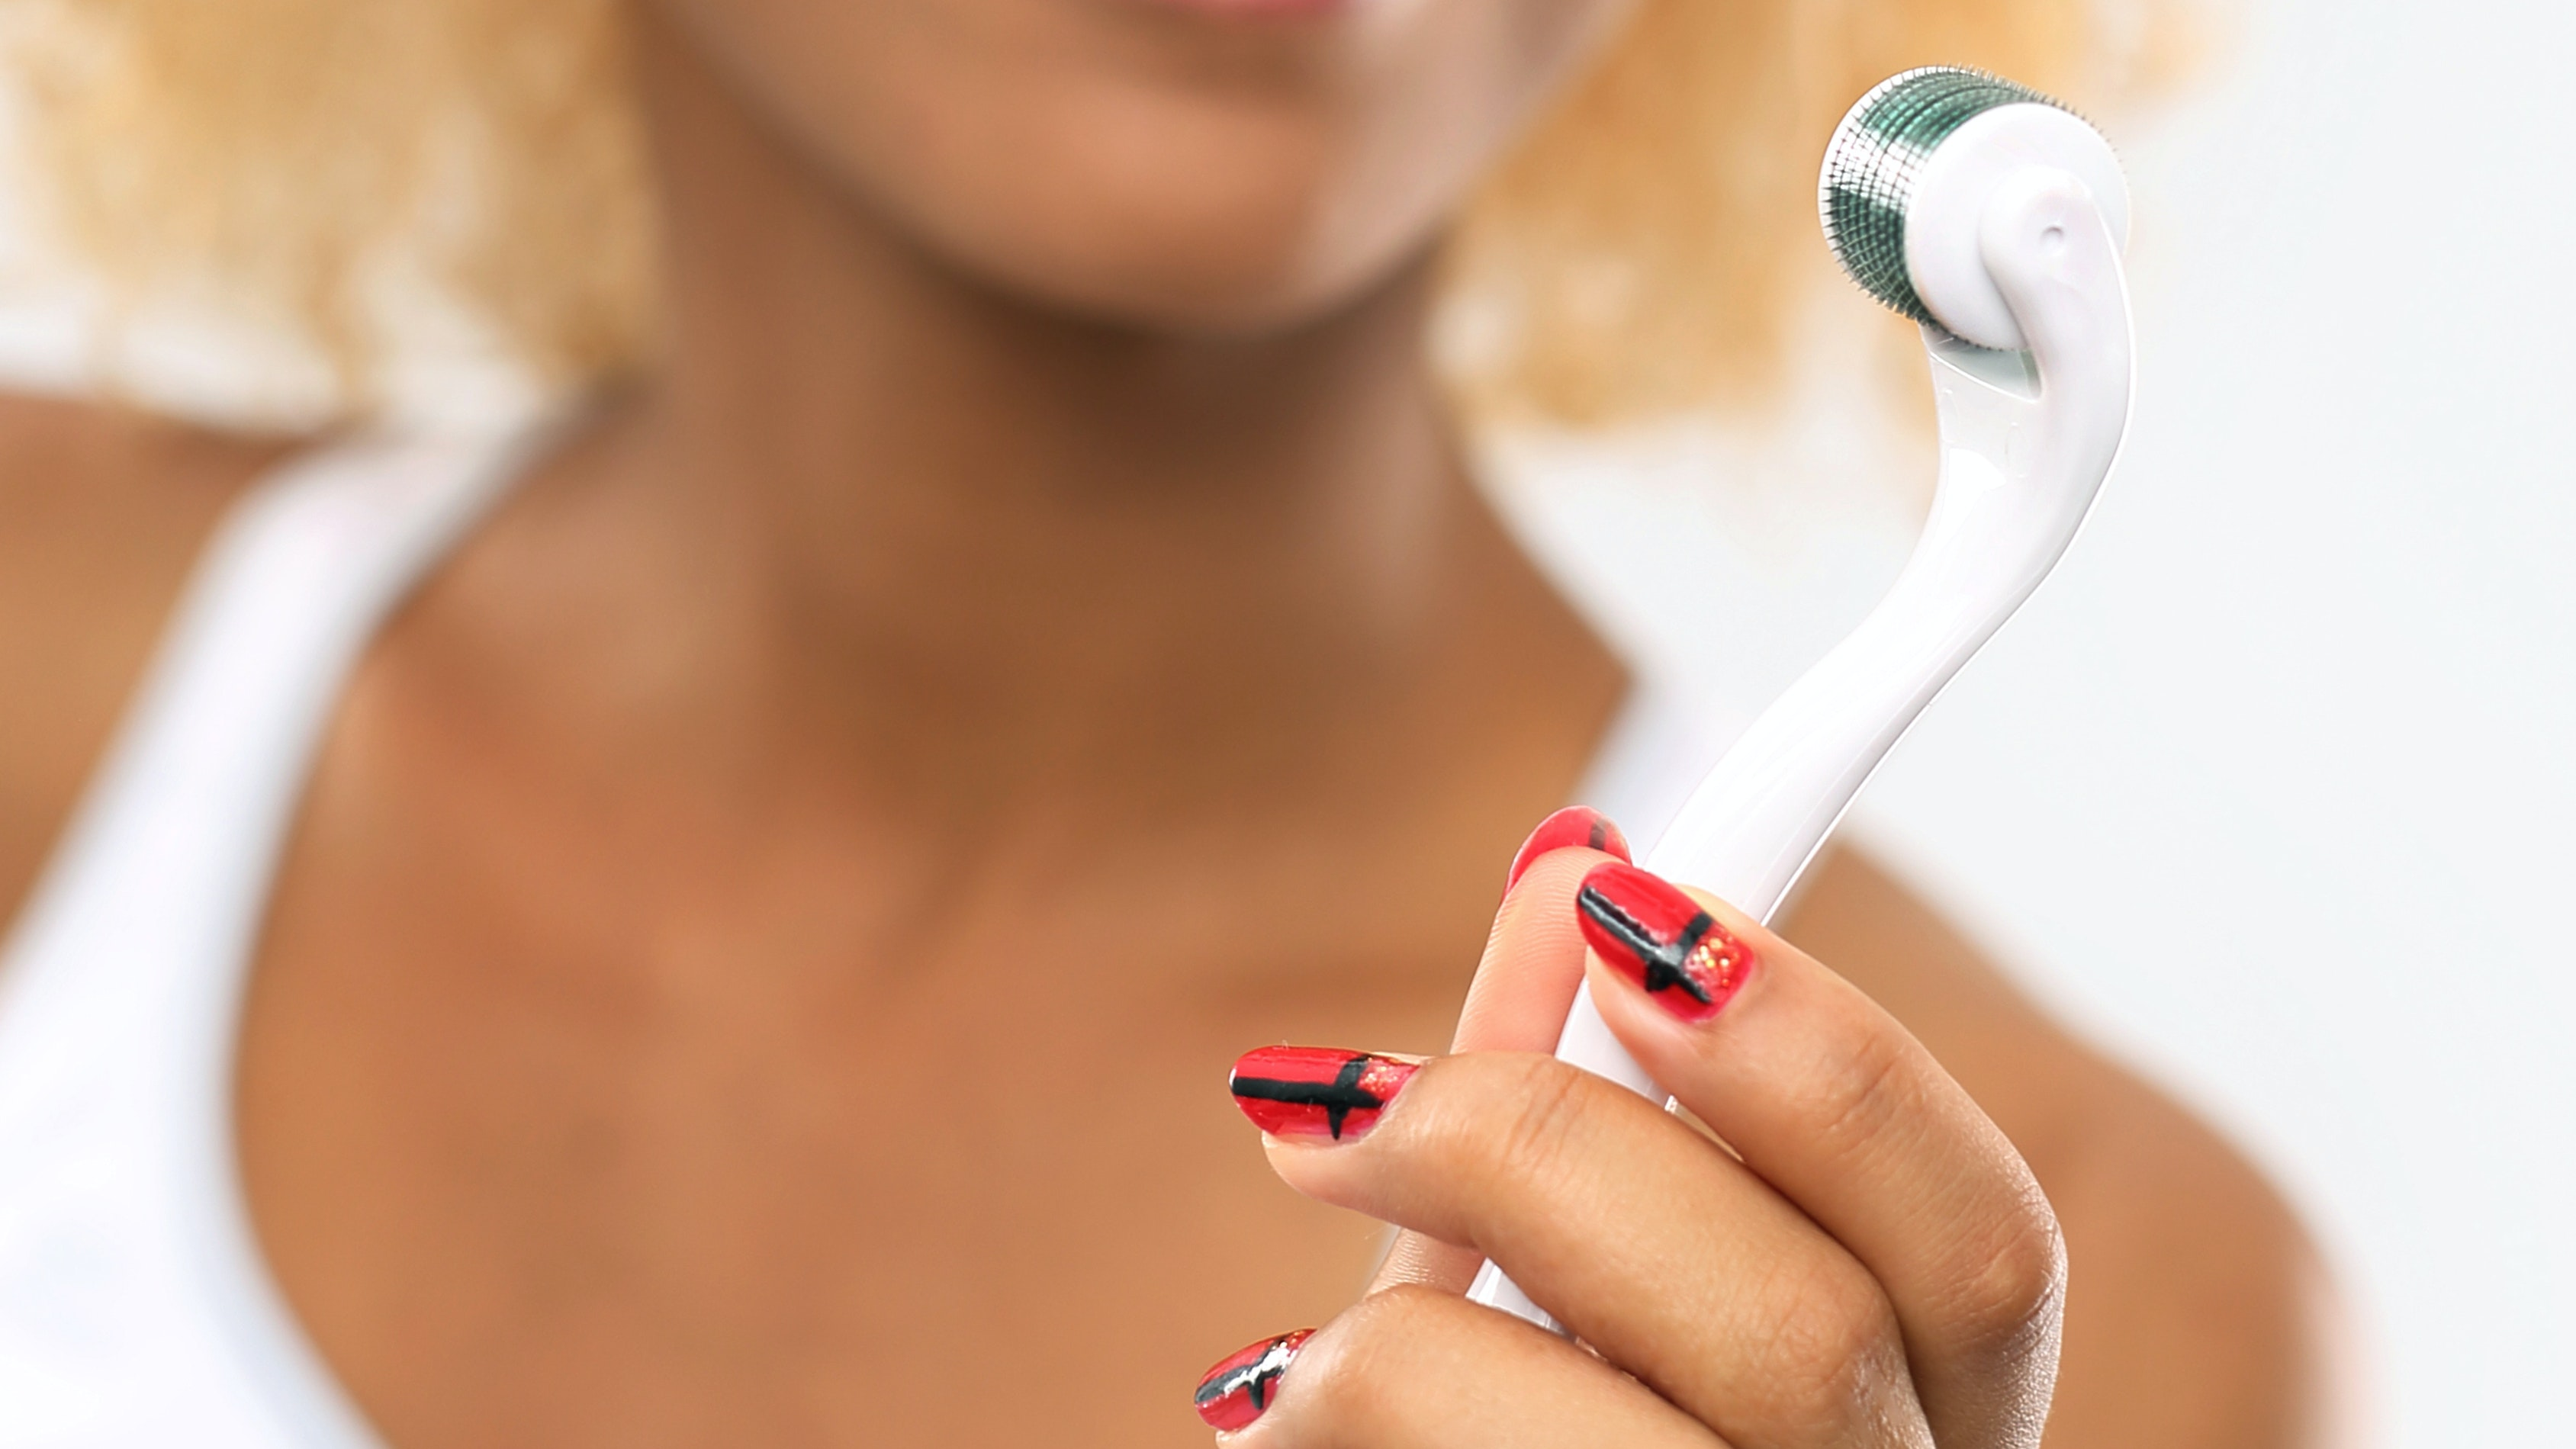 Woman holding a microneedling tool